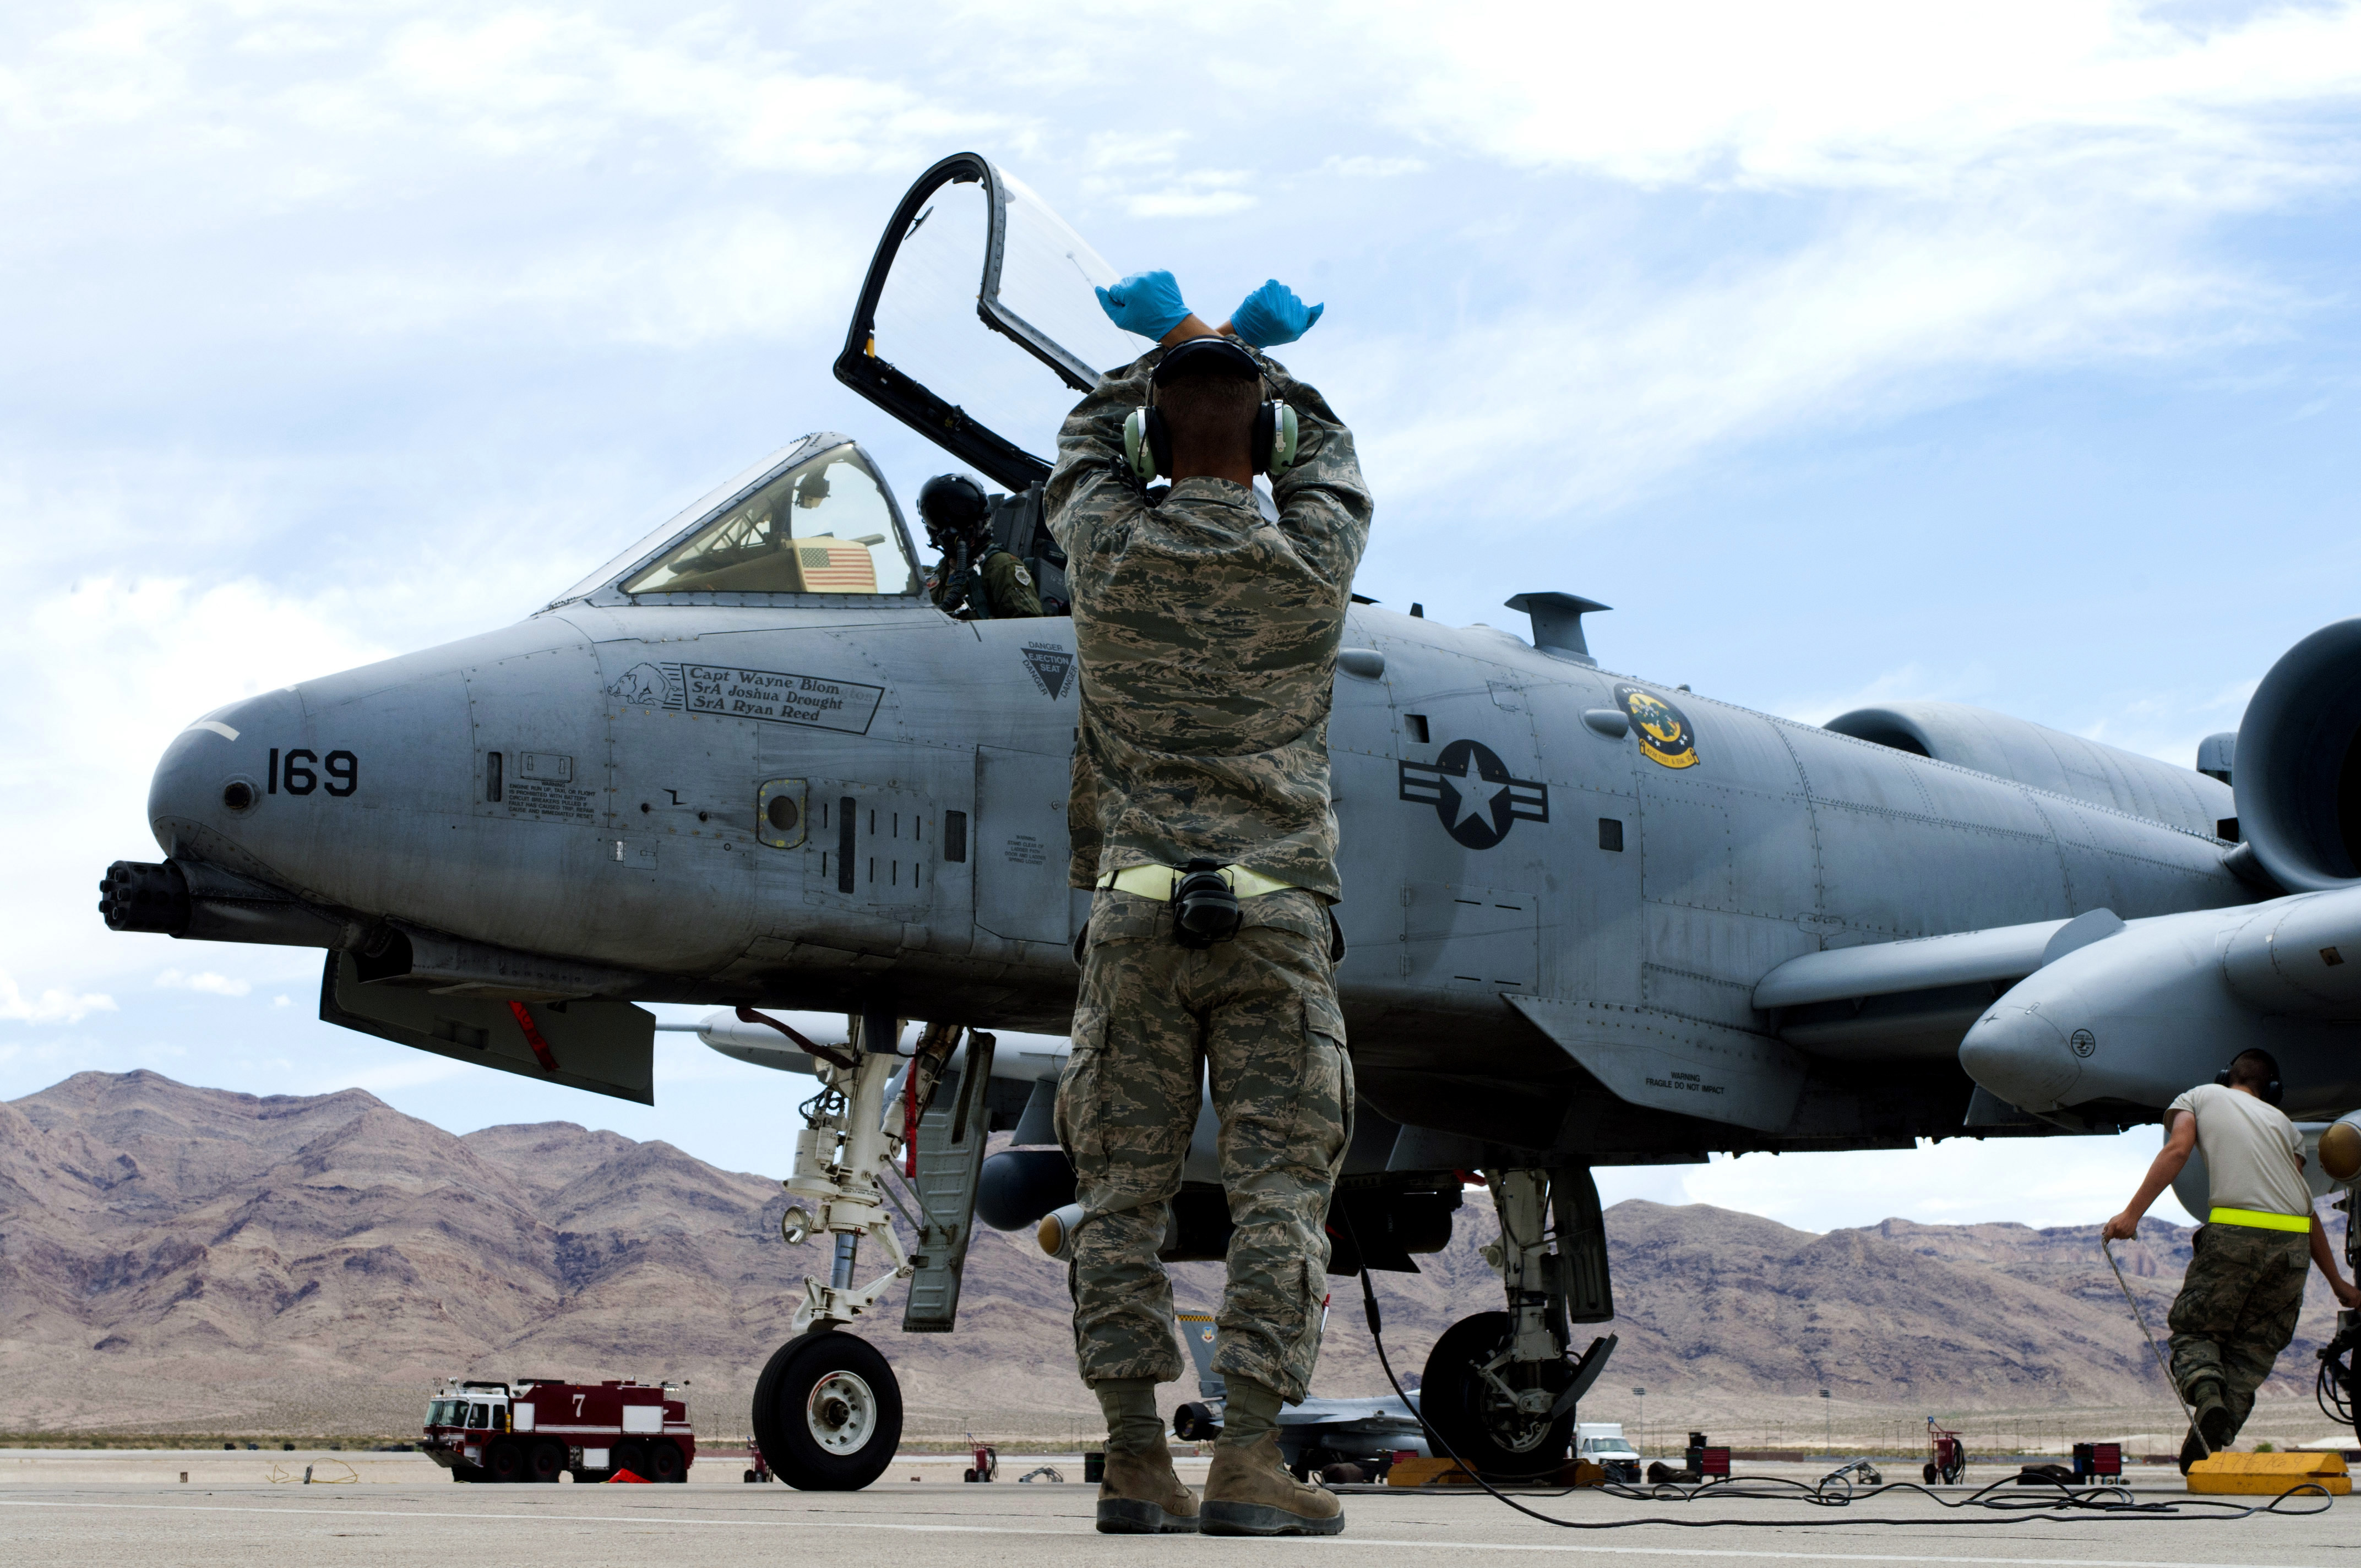 Airman Brandon Kempf, 757th Aircraft Maintenance Squadron assistant dedicated A-10 Thunderbolt II crew chief, watches as an aircraft taxis into position after landing in 2013 at Nellis Air Force Base, Nevada. (Airman 1st Class Joshua Kleinholz/U.S. Air Force)